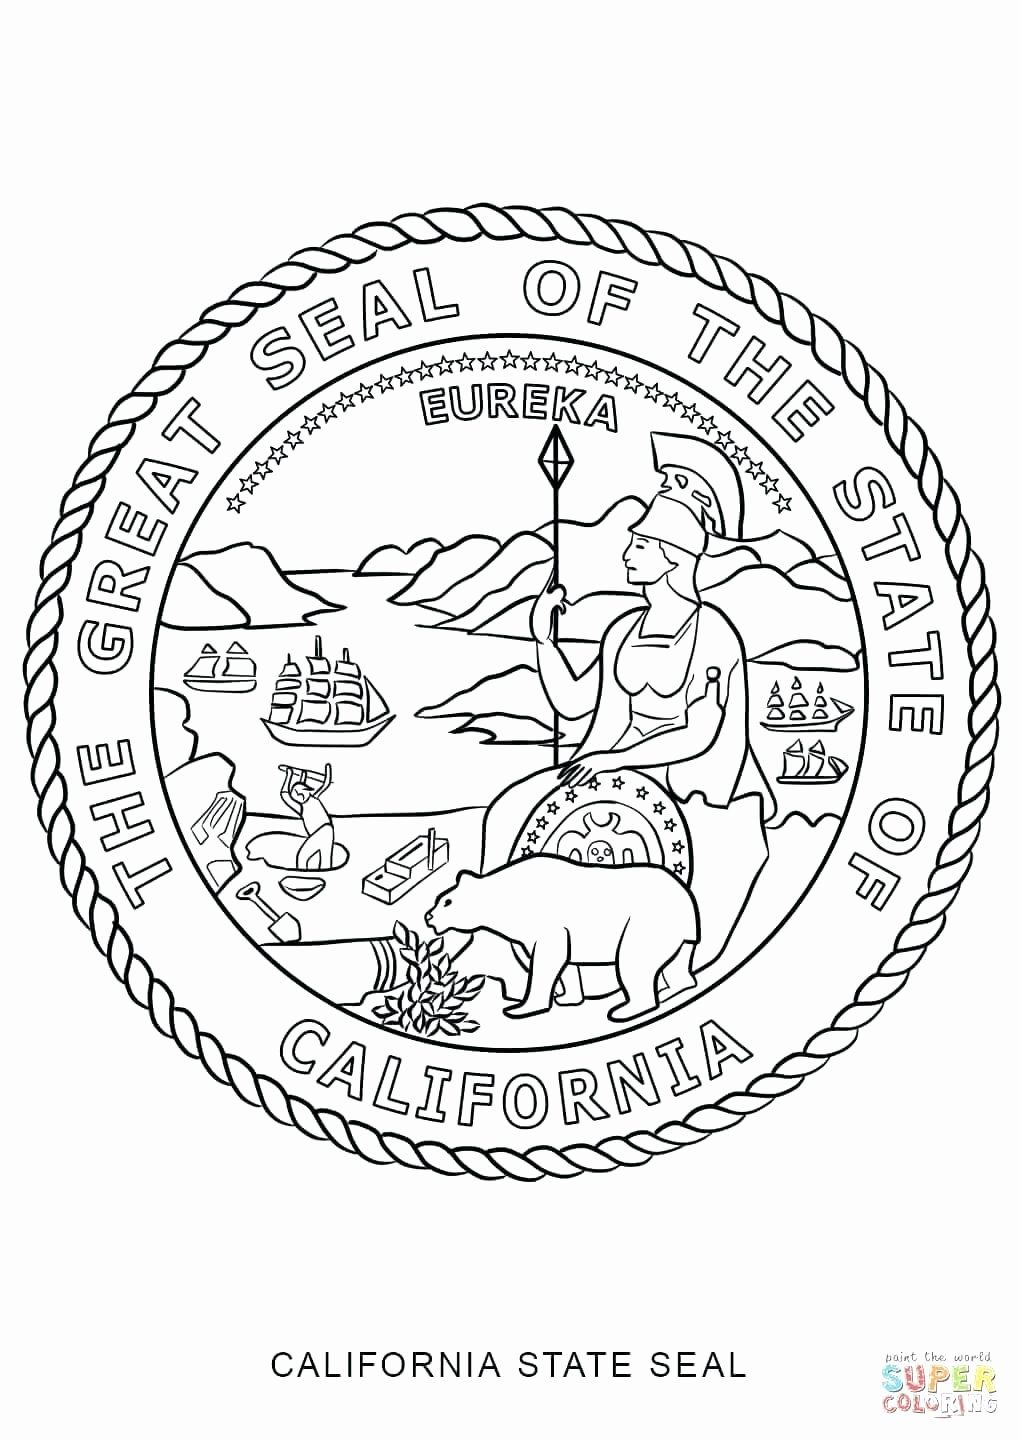 Virginia State Flag Coloring Page Best Of Virginia State Flag Coloring Page Micronsheet Flag Coloring Pages Coloring Pages Flower Coloring Pages